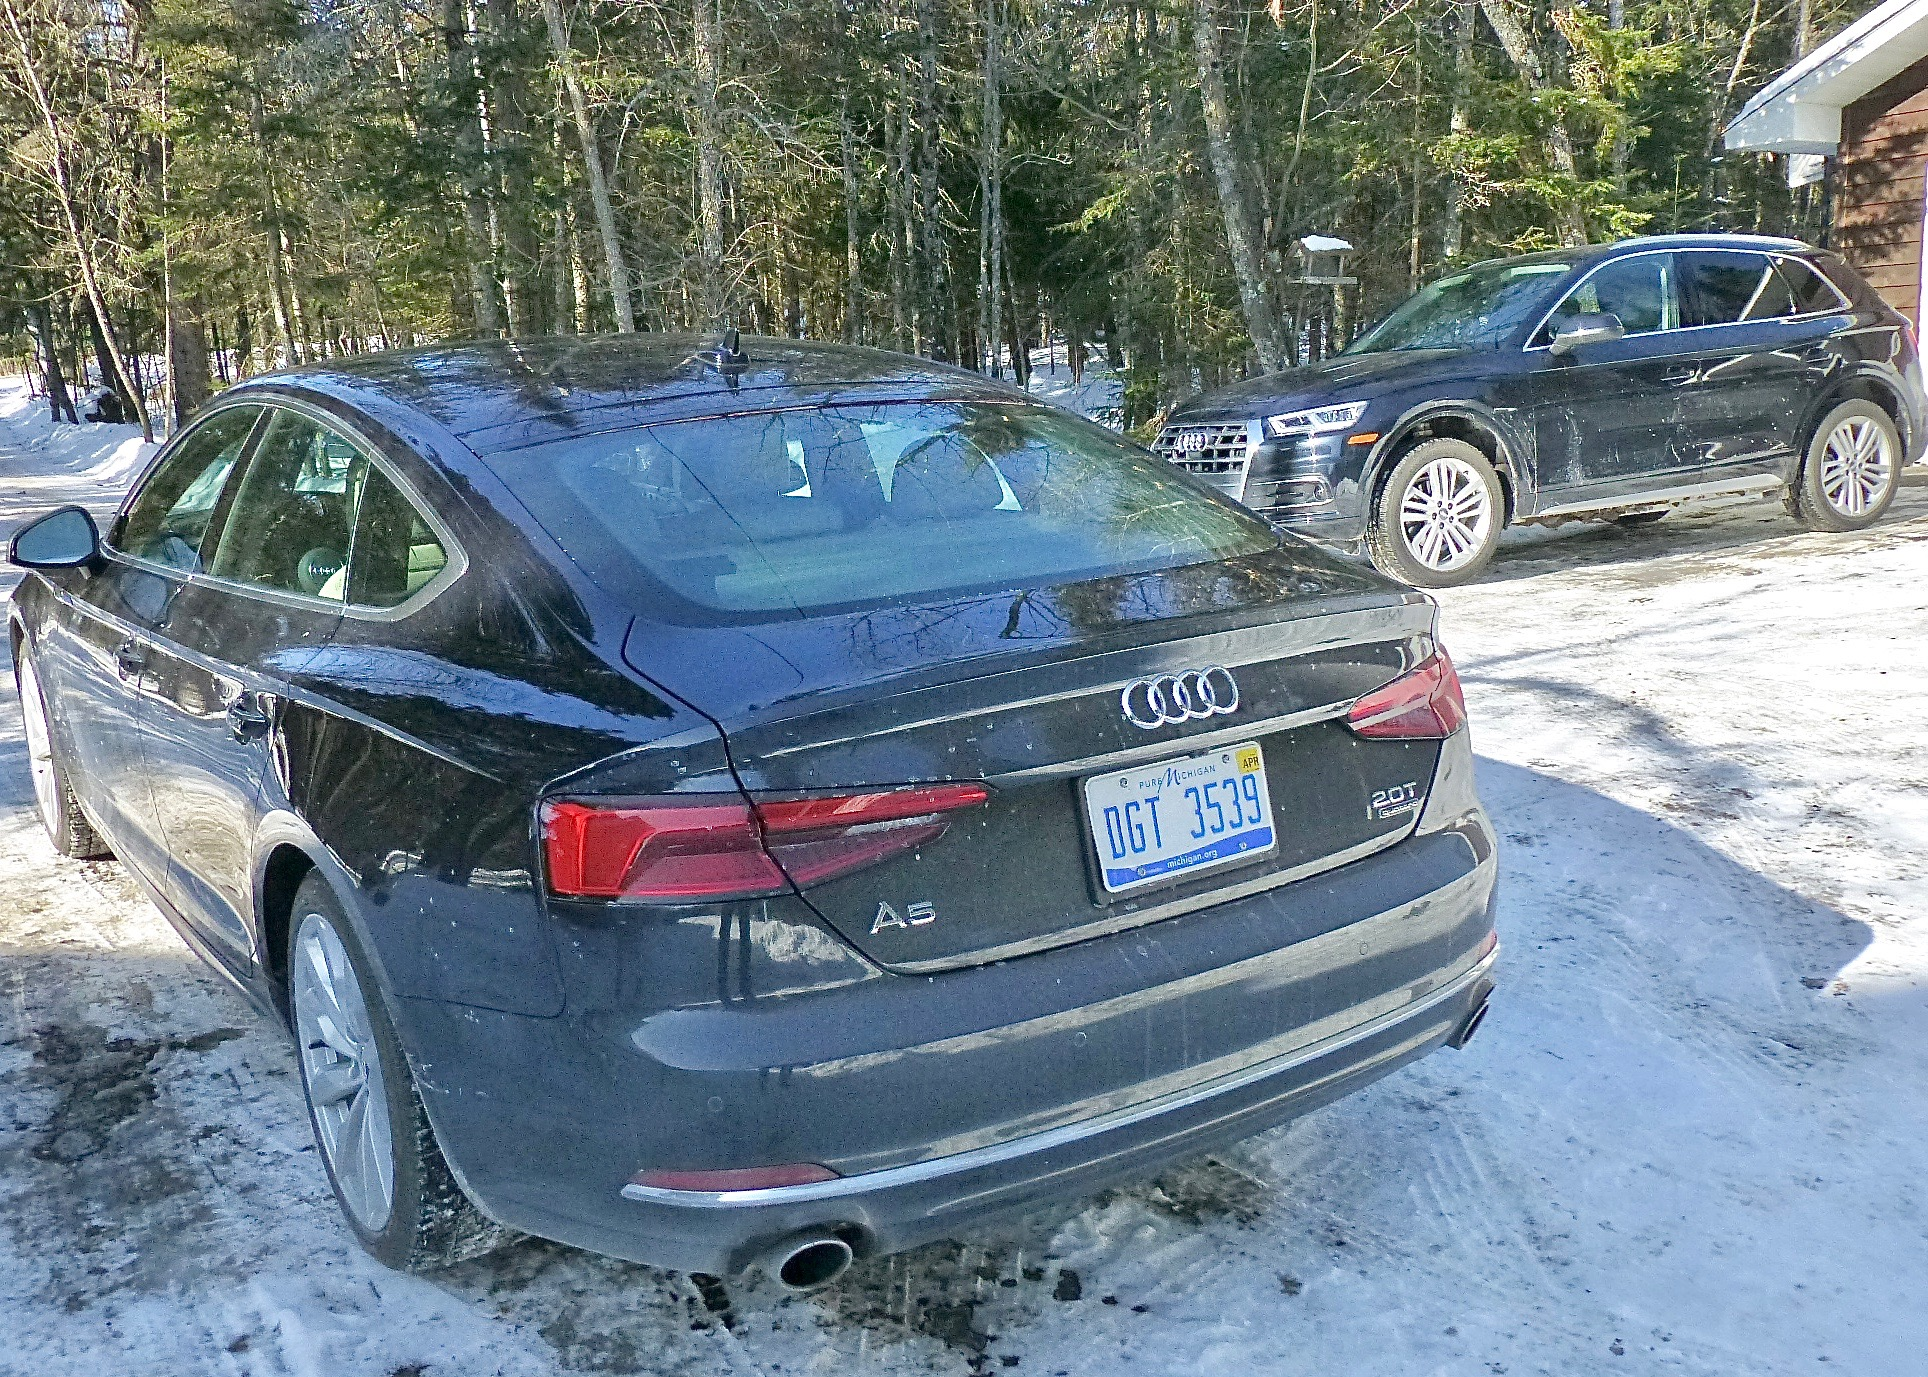 If you choose wisely, you can get either an Audi Q5 or A5 sedan with the same drivetrain.